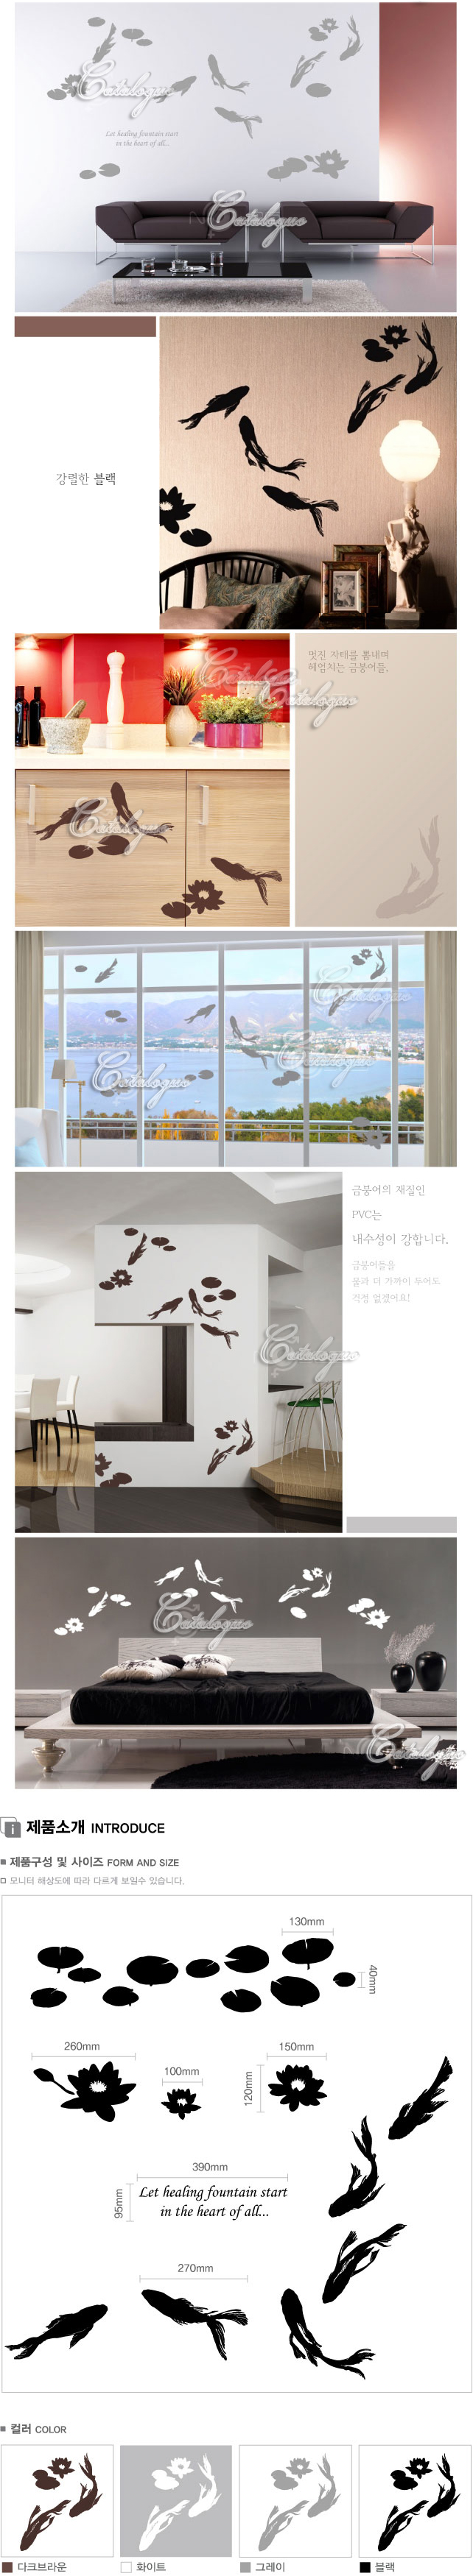 wall stickers for sale at Catalogue Singapore